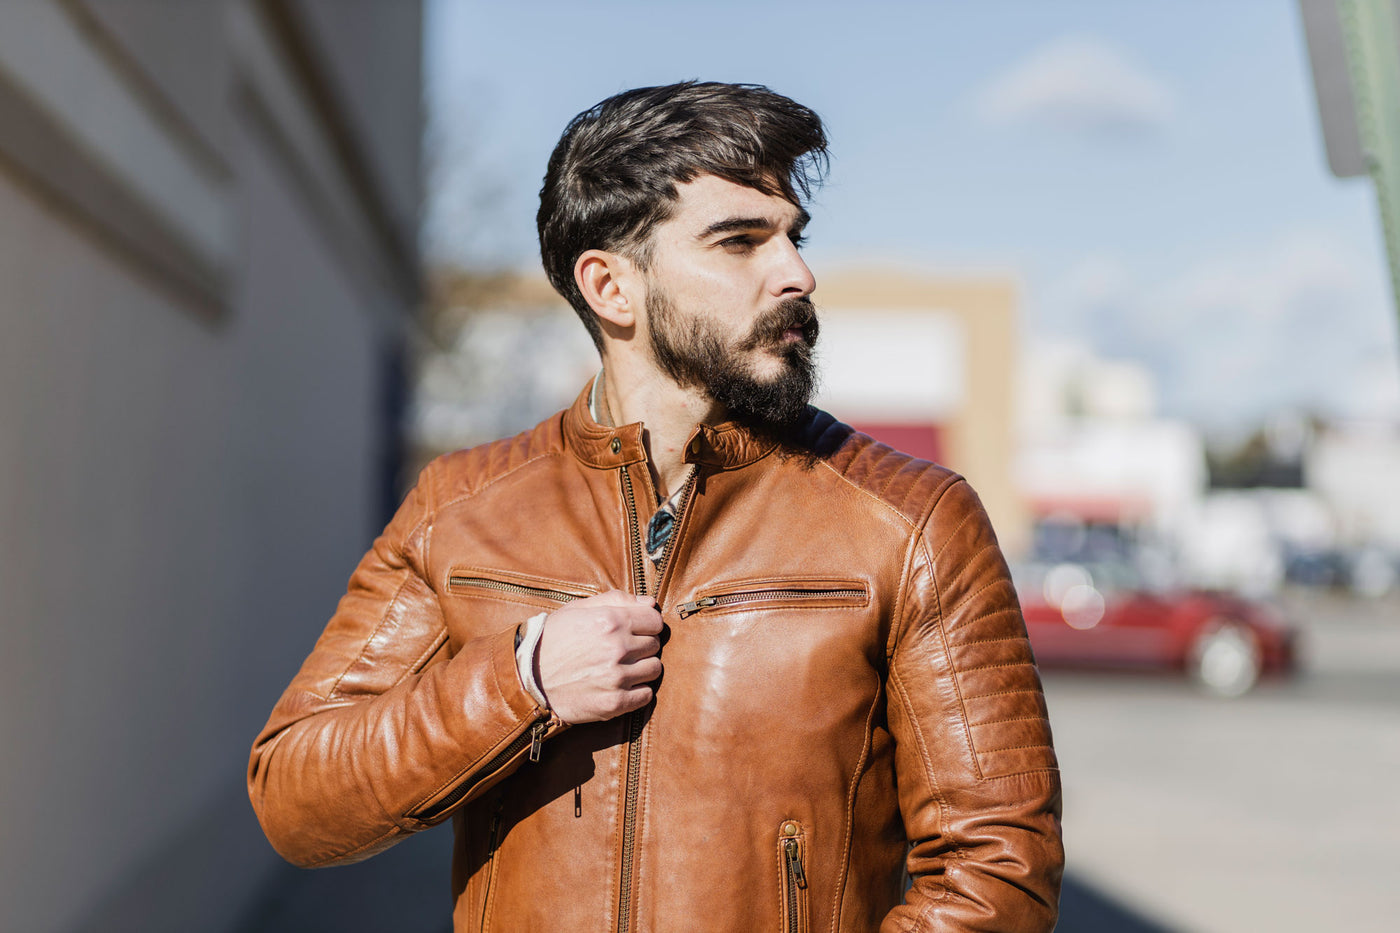 Men's Fashion | Zara Leather - Designer Fashion and Motorcycle Apparel